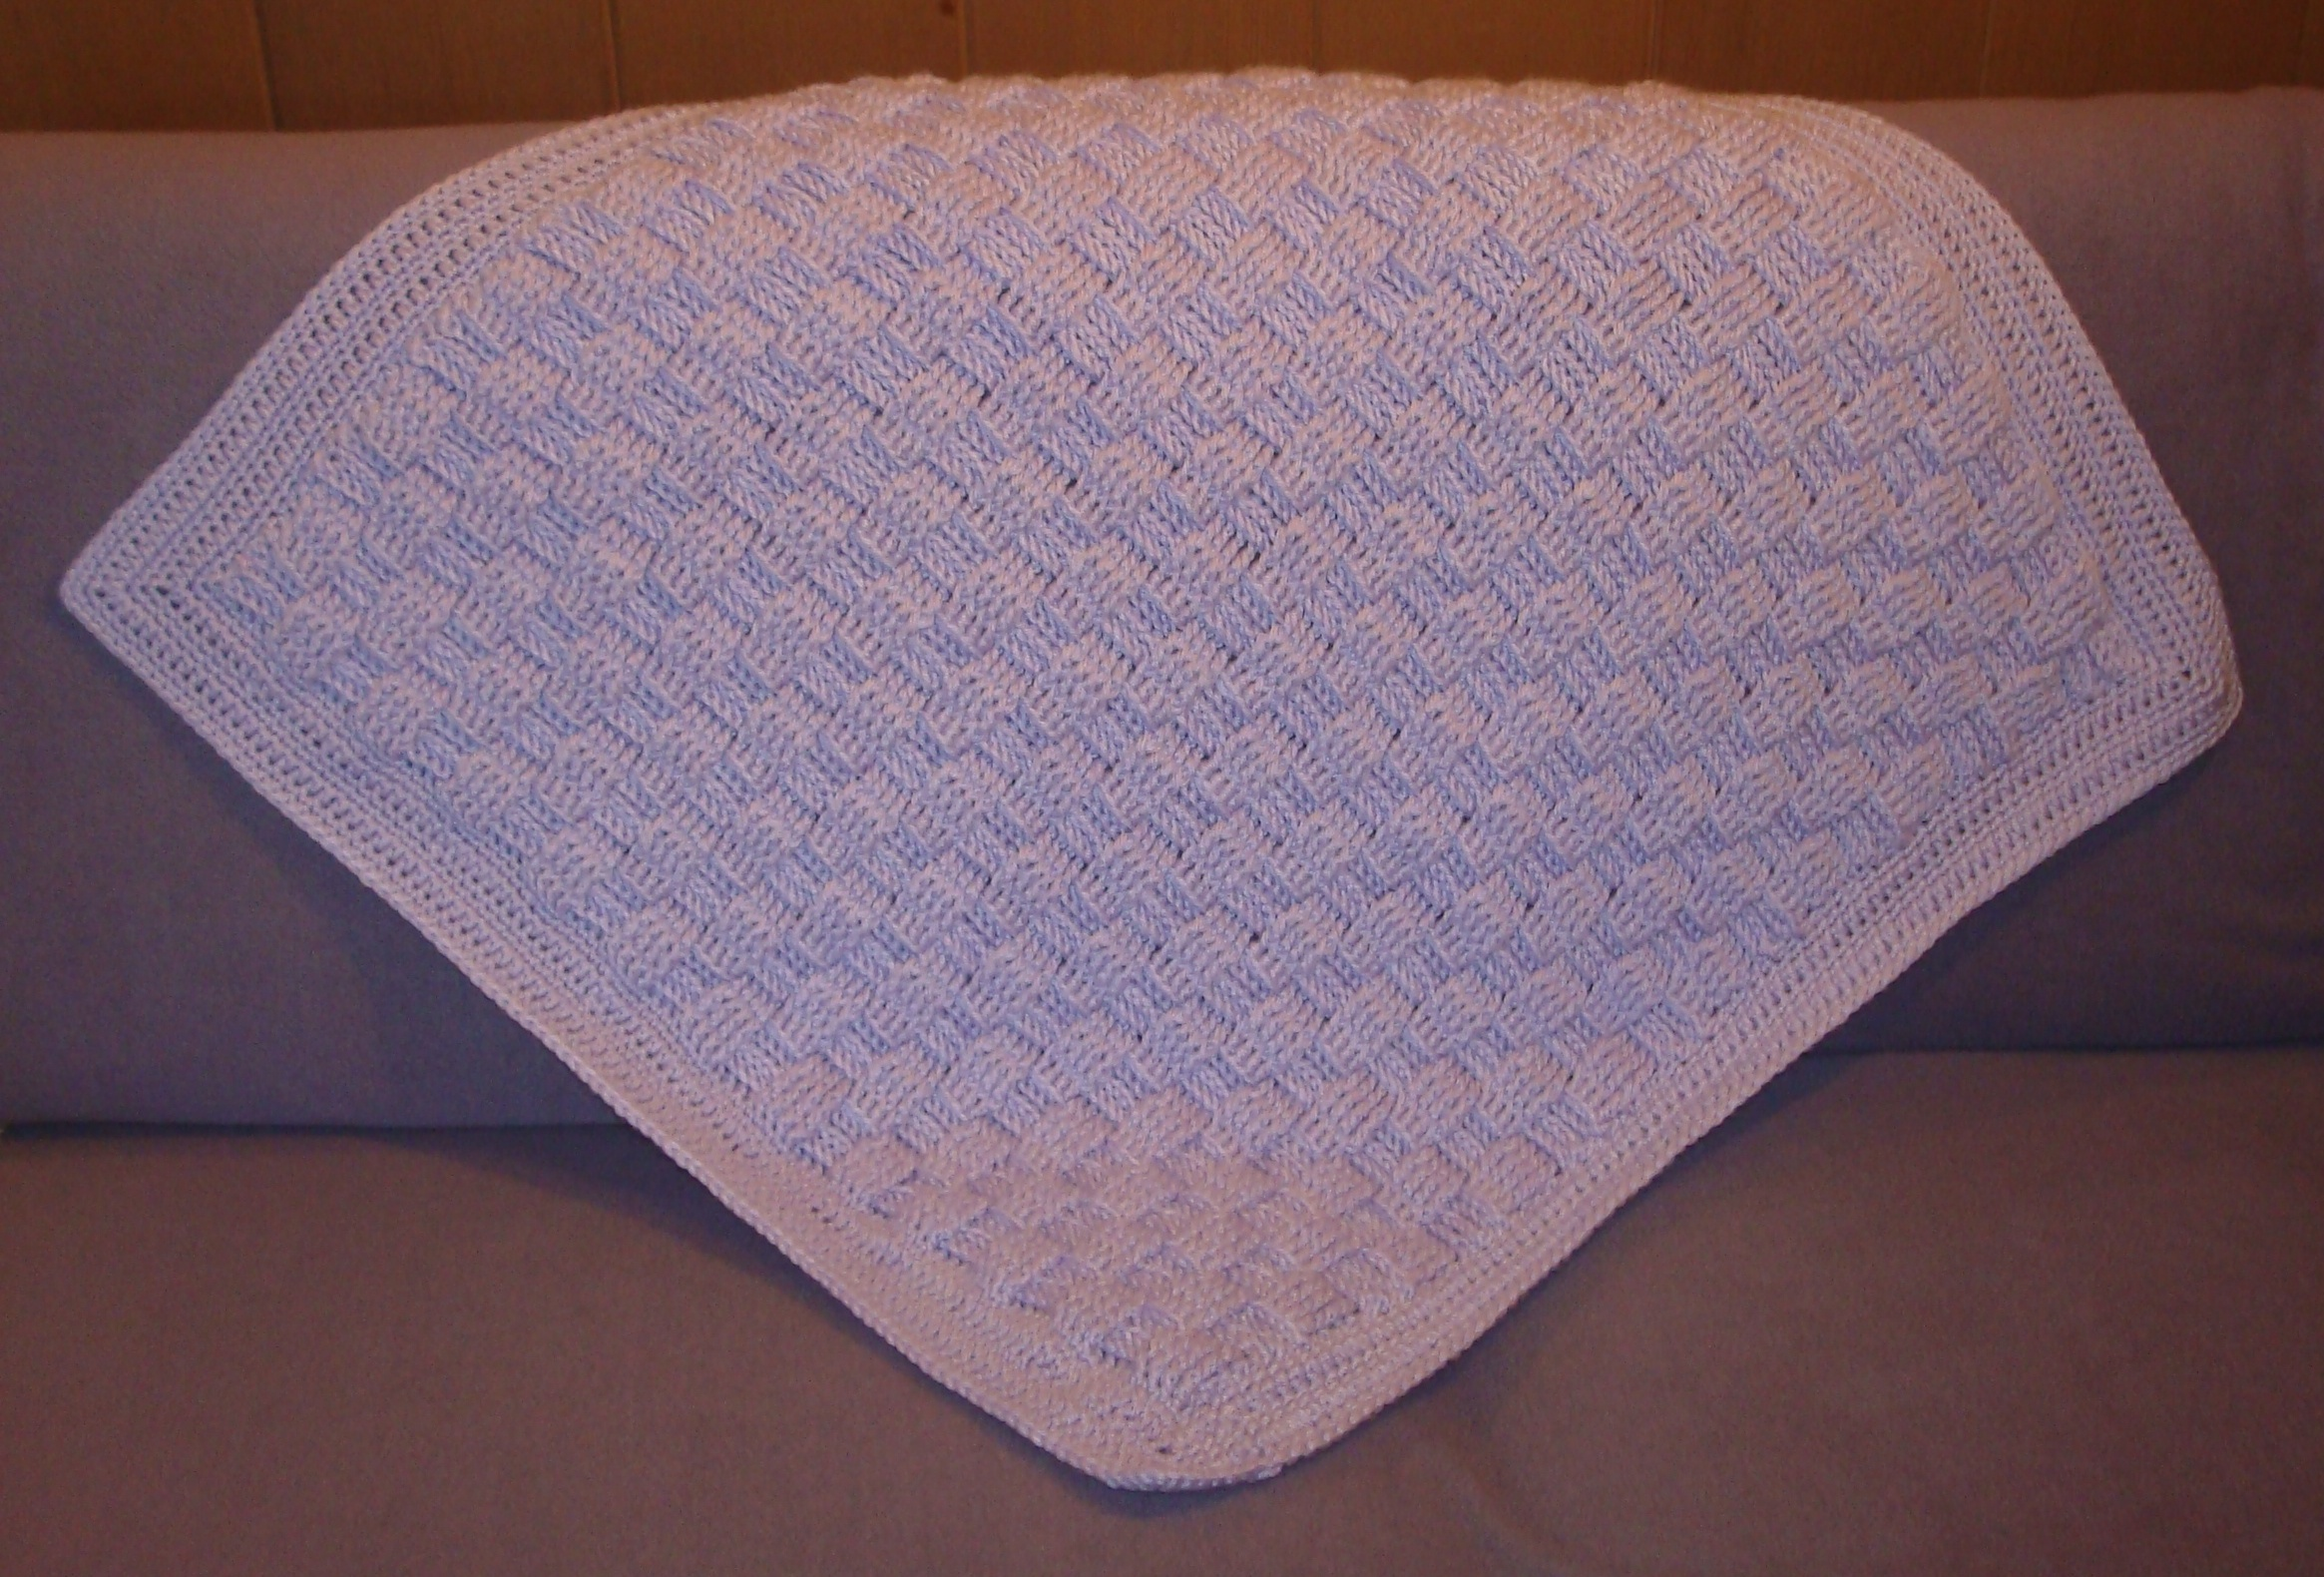 Cousin Crystal's Crocheted Basket Weave Baby Blanket